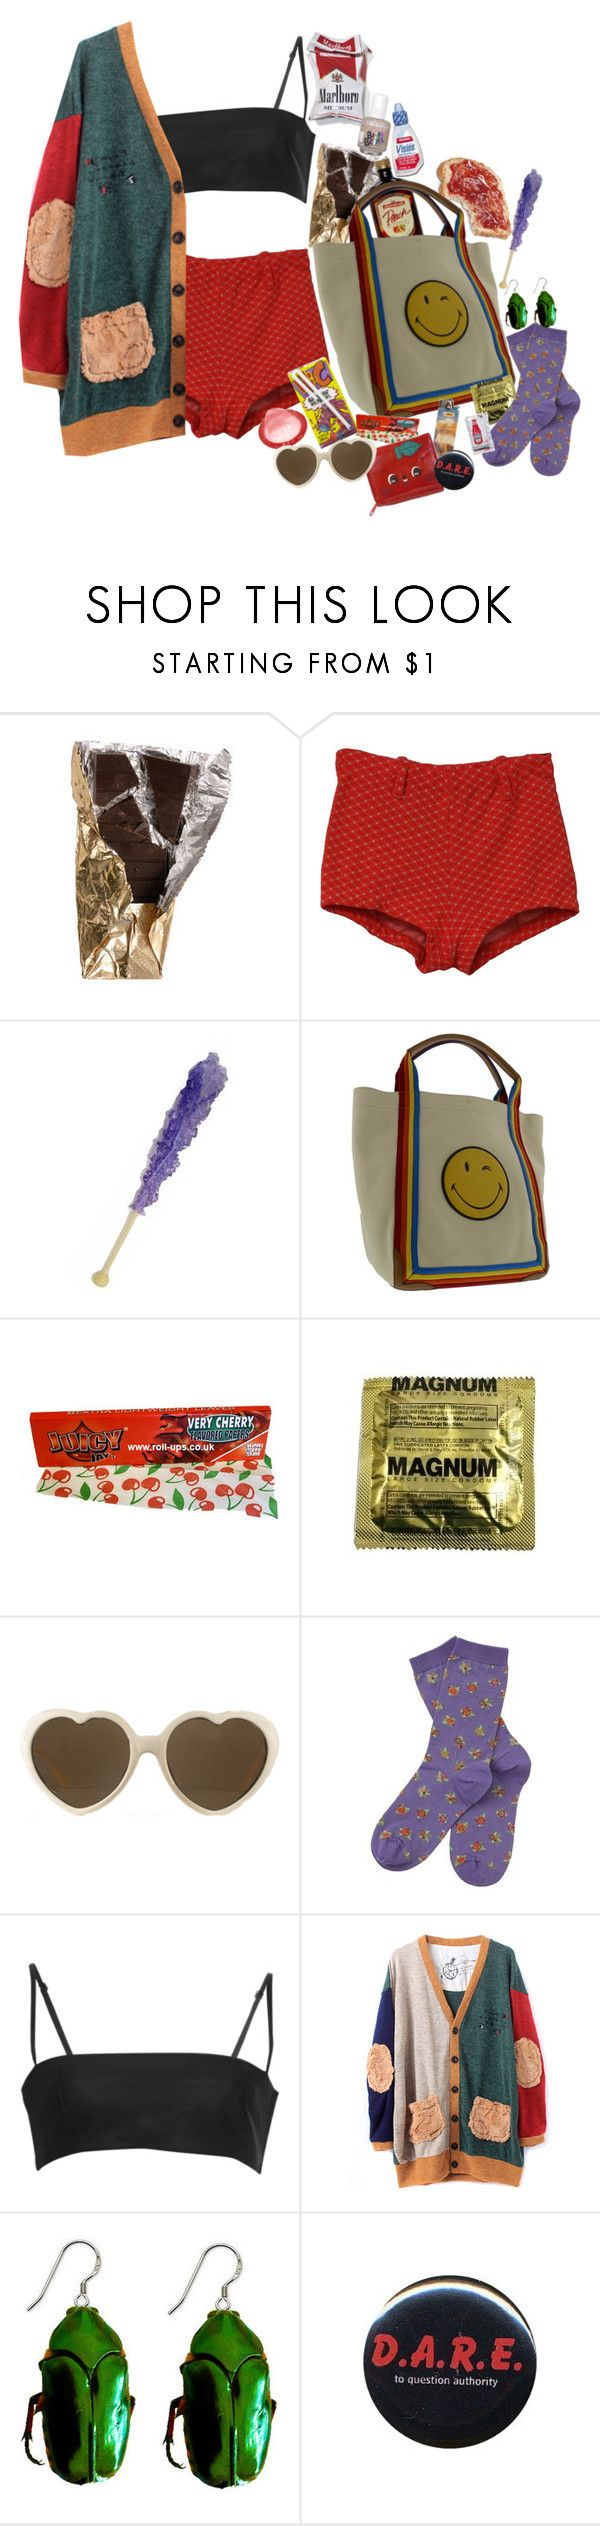 """""""VACATION WITH YOUR SHlTTY FAMILY"""" by nymphdreams ❤ liked on Polyvore featuring Care Label, Anya Hindmarch, RETROSPECS, Barbour, Alexander Wang, Coccinelle and Ultimate"""